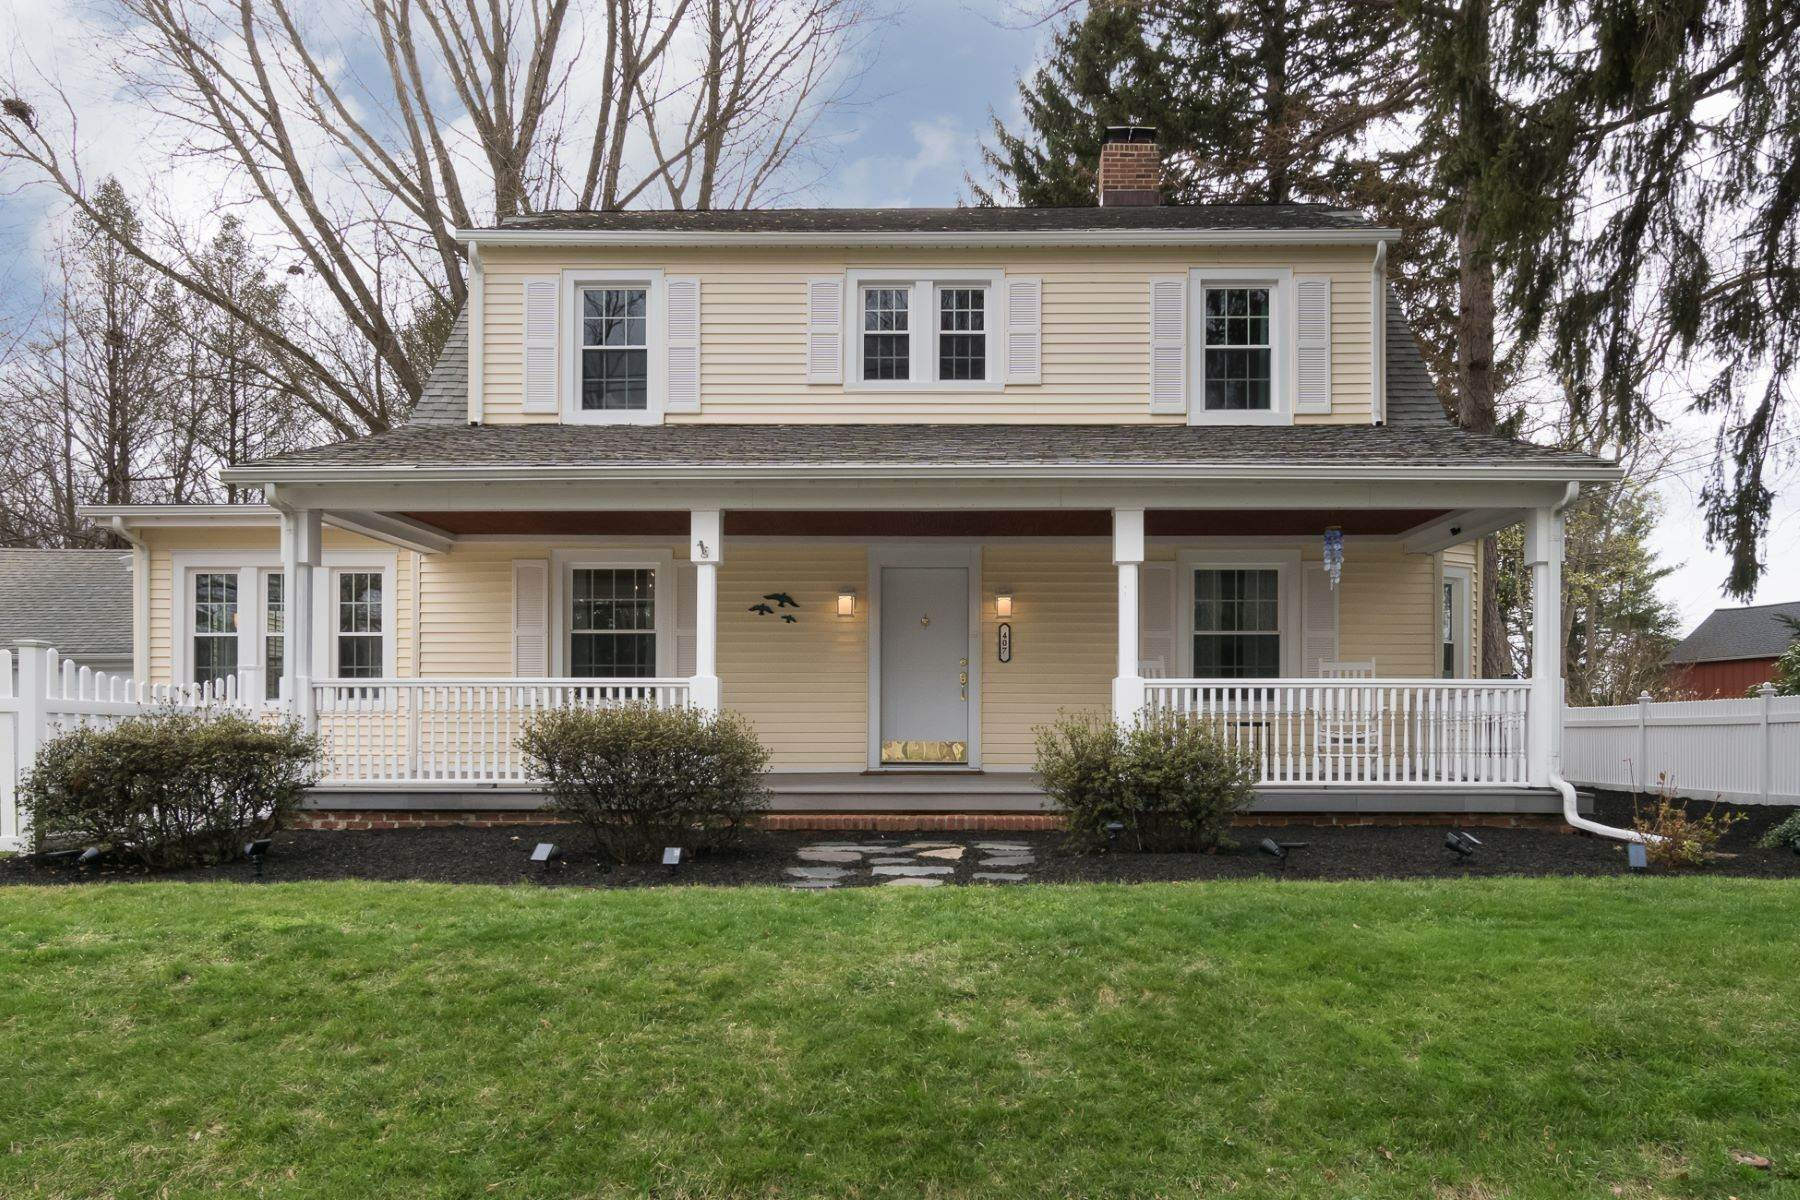 Single Family Homes for Sale at Renovated and Rejuvenated Inside and Out 407 Village Road East, Princeton Junction, New Jersey 08550 United States